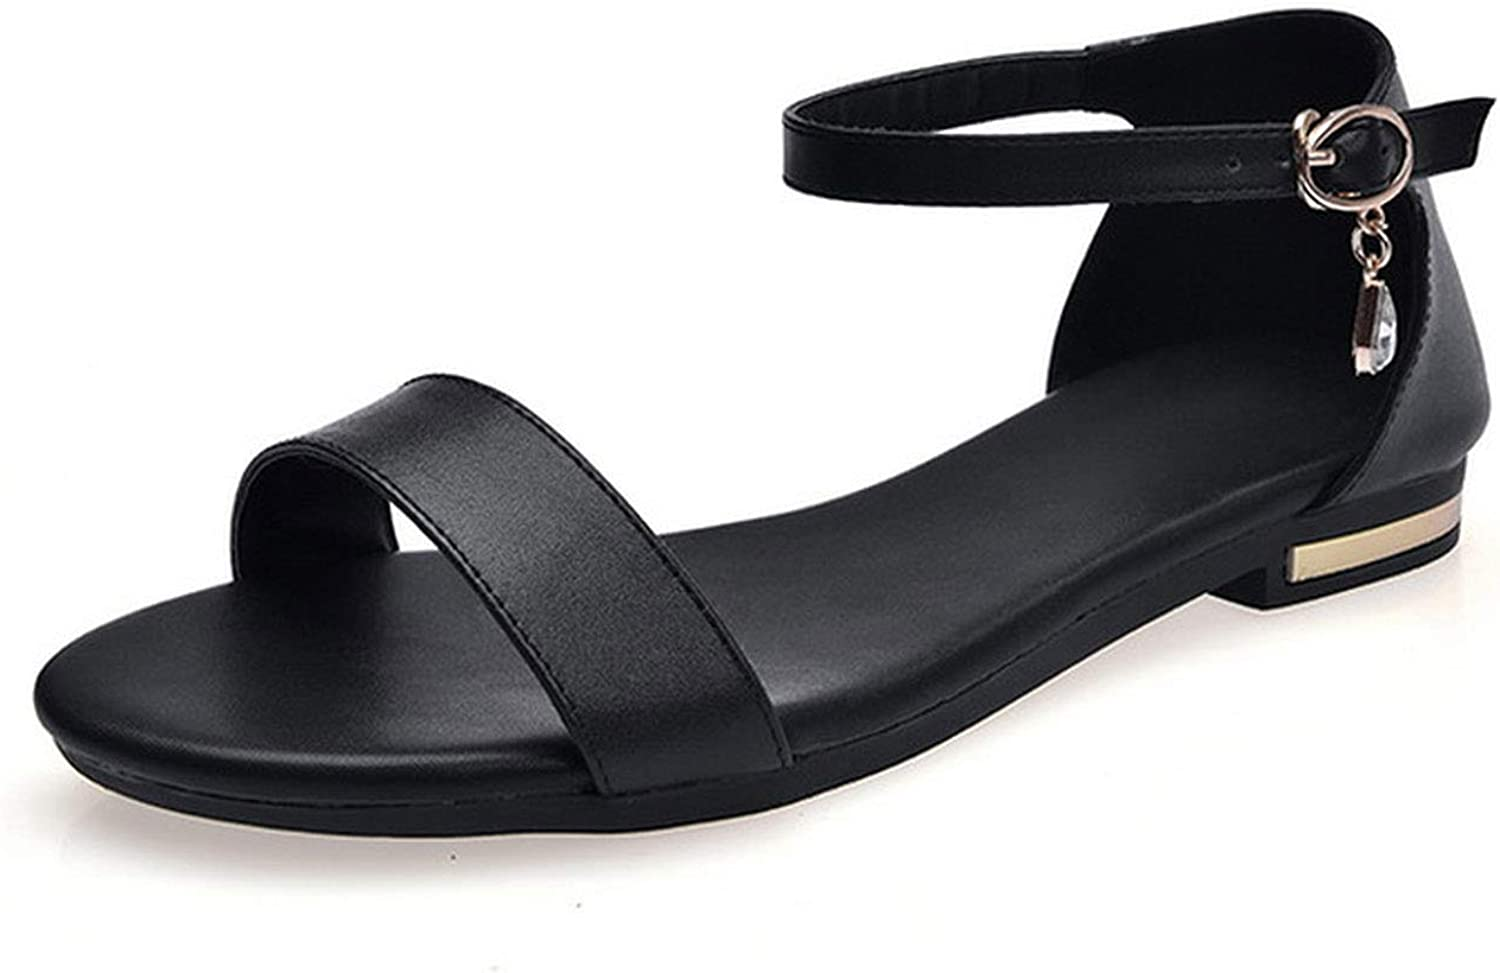 Women Sandals Flat Shoes Peep Toe Cow Leather Pearl Buckle Summer Spring 2019 New Sweet Fashion Casual Black Big Size 34-42